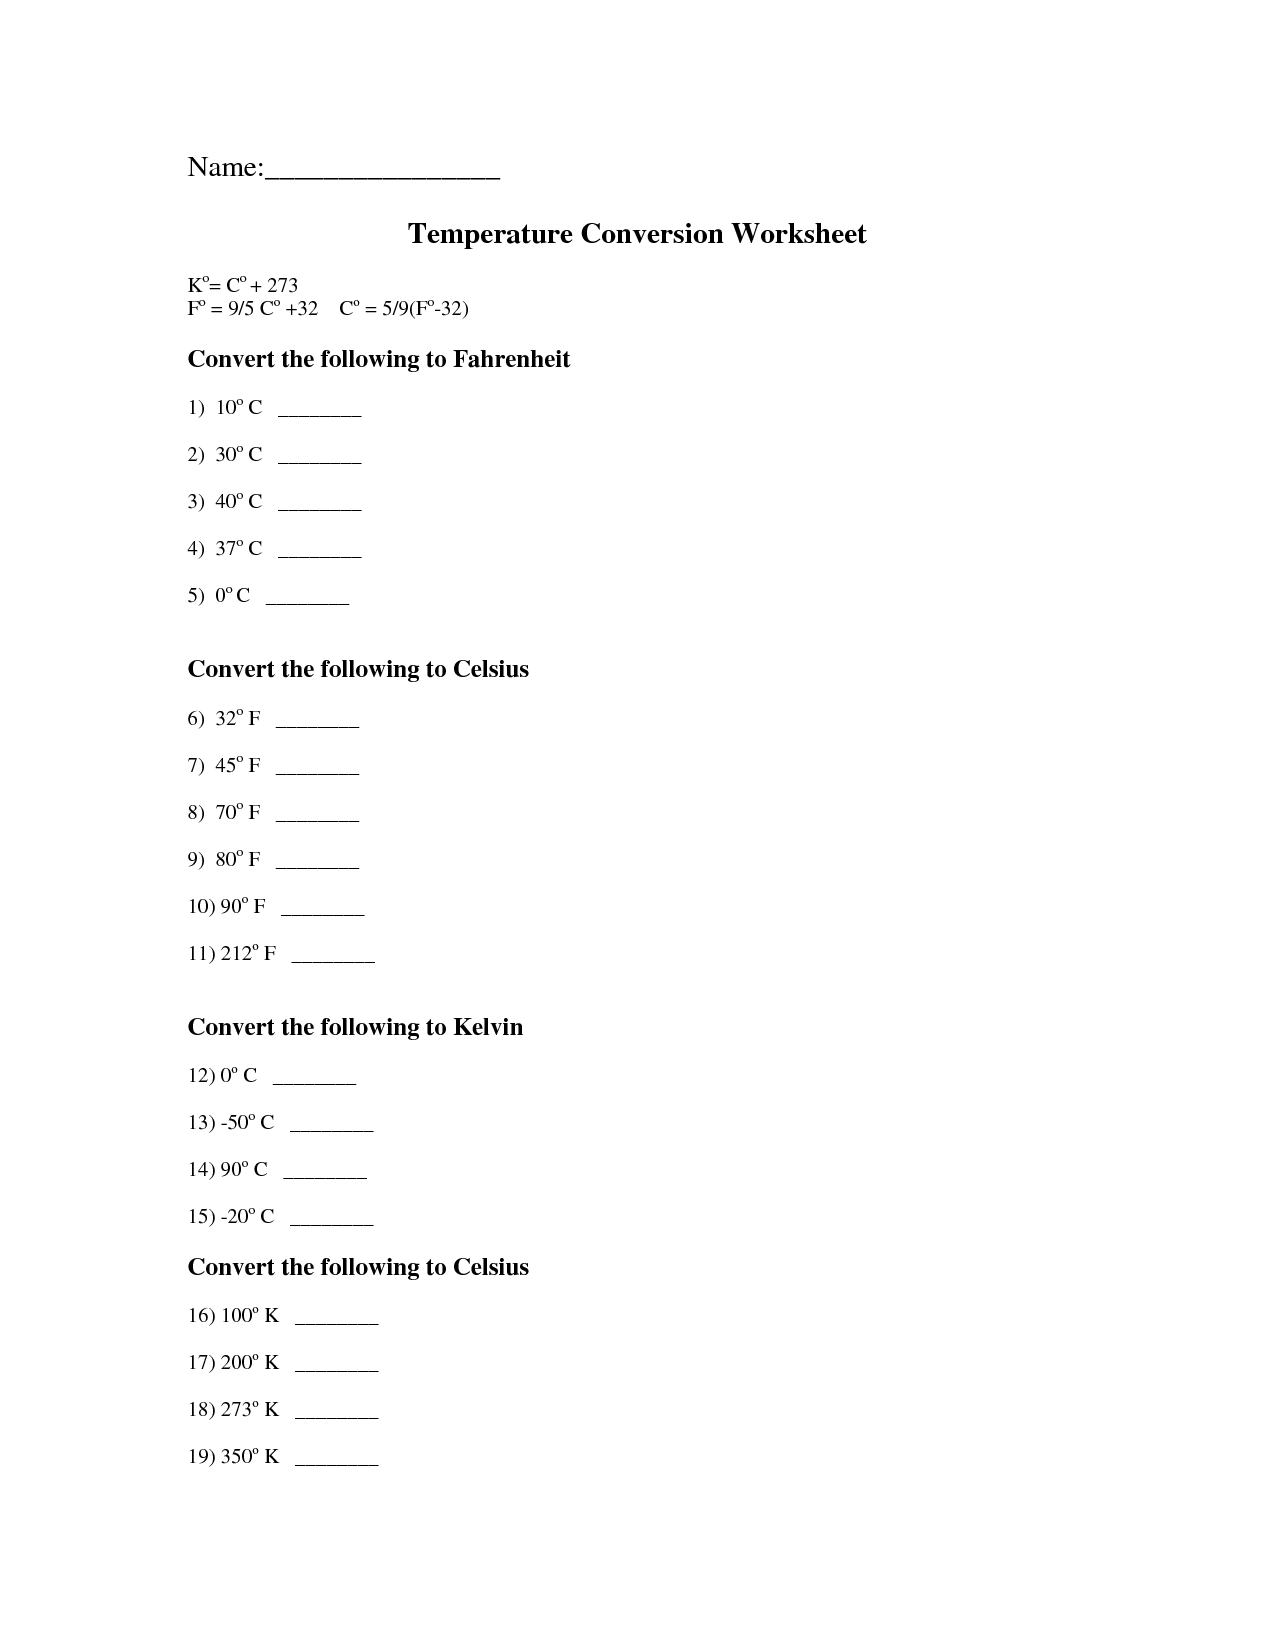 13 Best Images of Kelvin Temperature Conversion Worksheet  Kelvin Celsius Fahrenheit